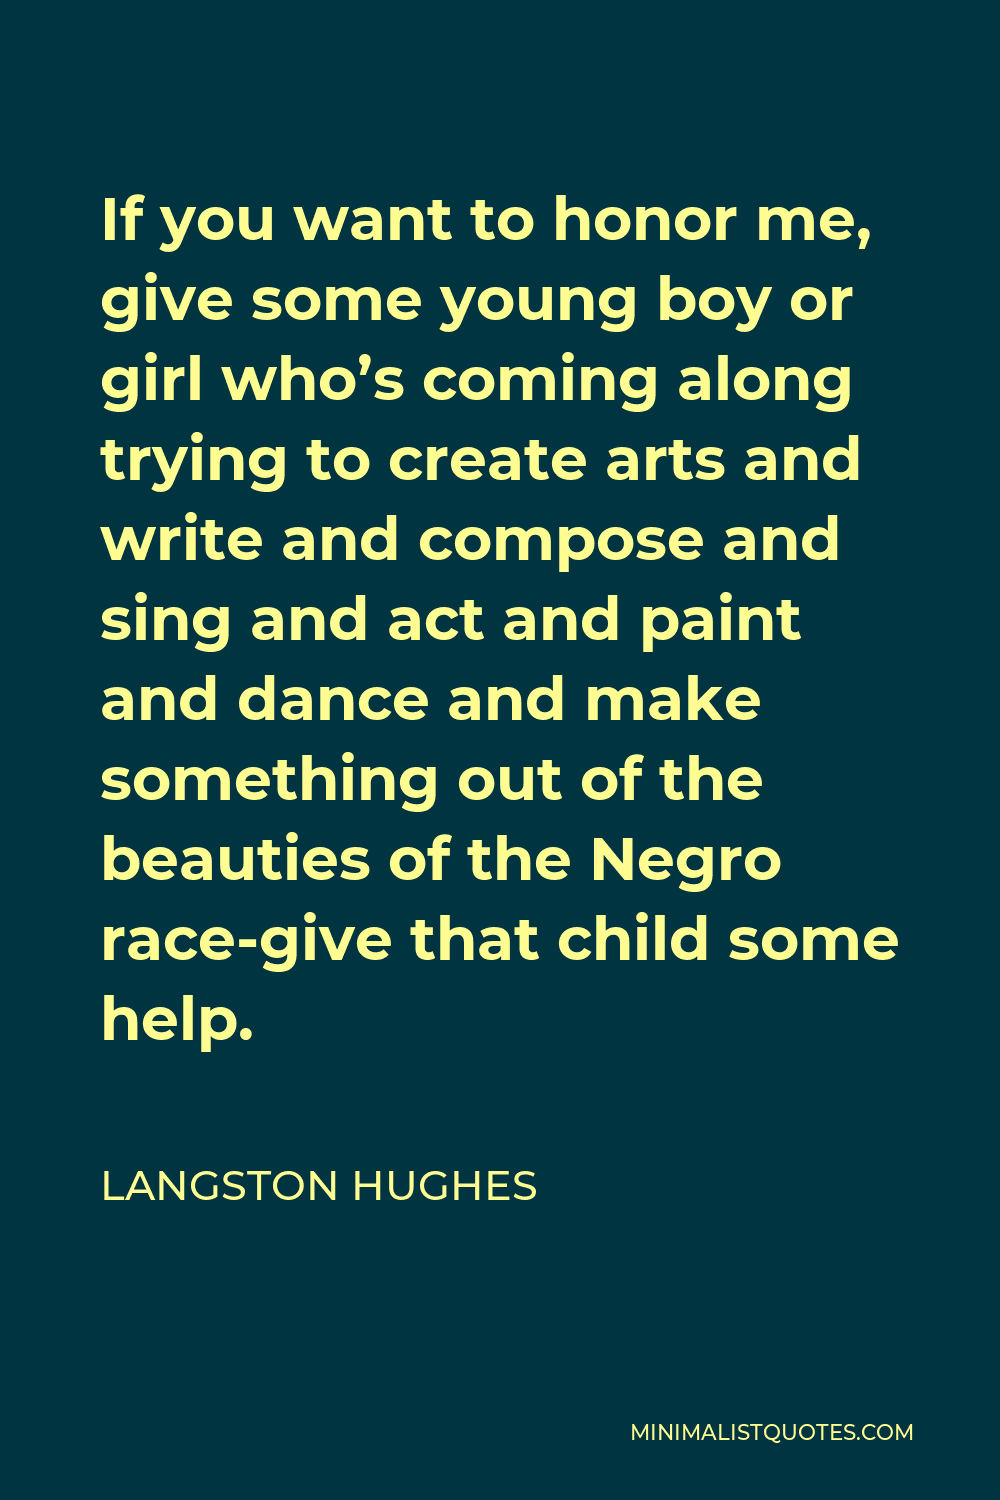 Langston Hughes Quote - If you want to honor me, give some young boy or girl who's coming along trying to create arts and write and compose and sing and act and paint and dance and make something out of the beauties of the Negro race-give that child some help.